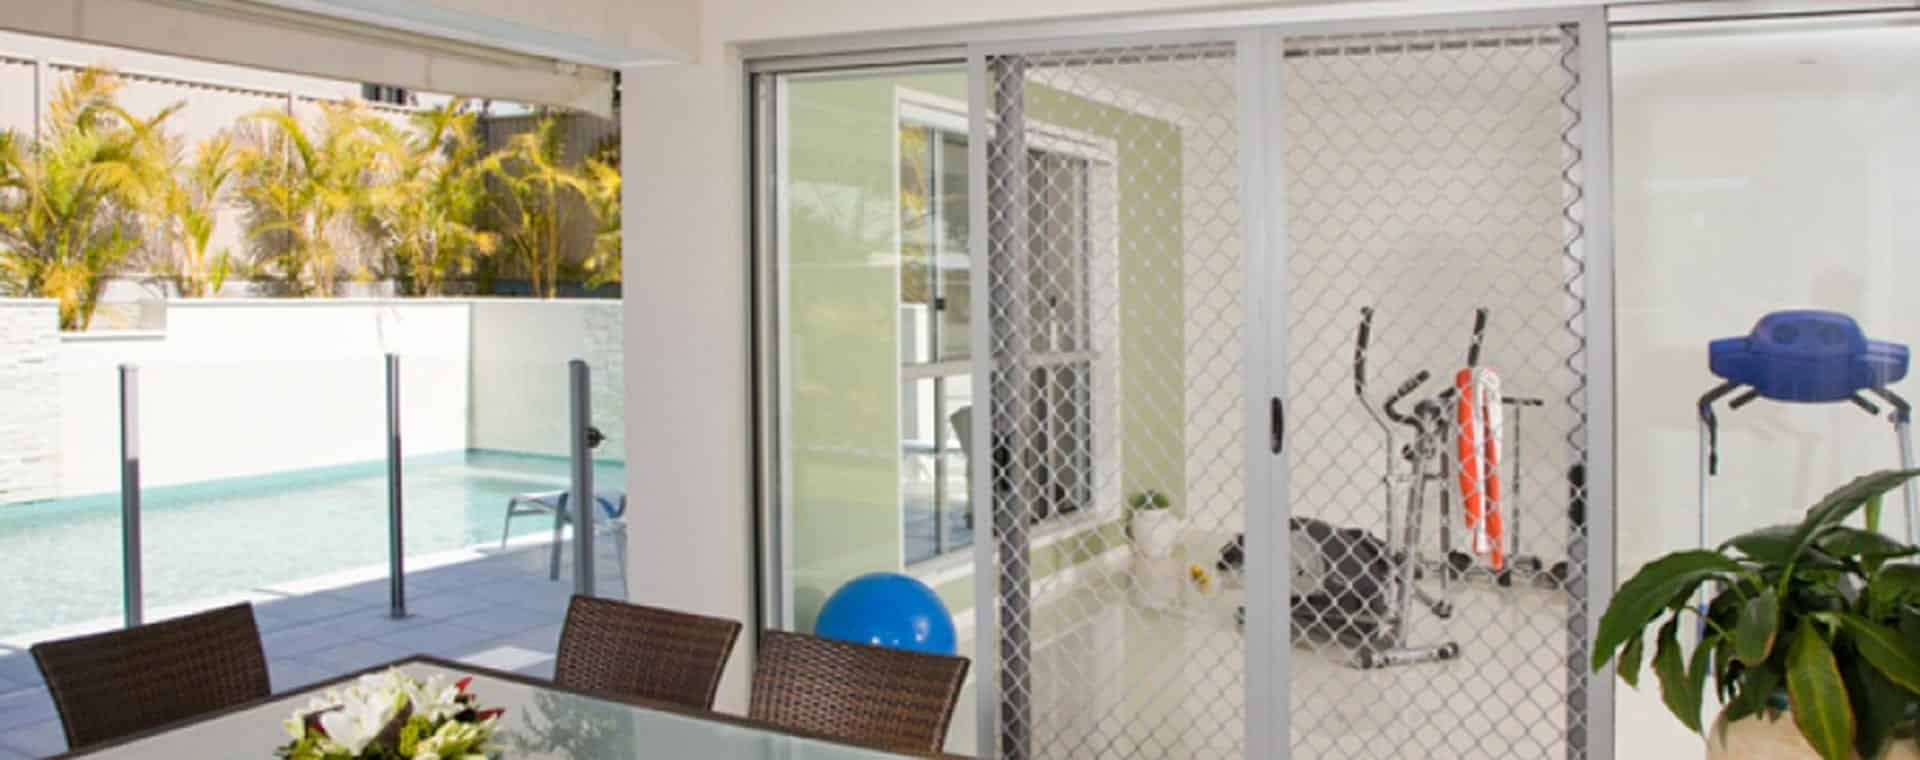 Blinds Toowoomba Diamond Grille Security Screens Brisbane Shutterup Blinds And